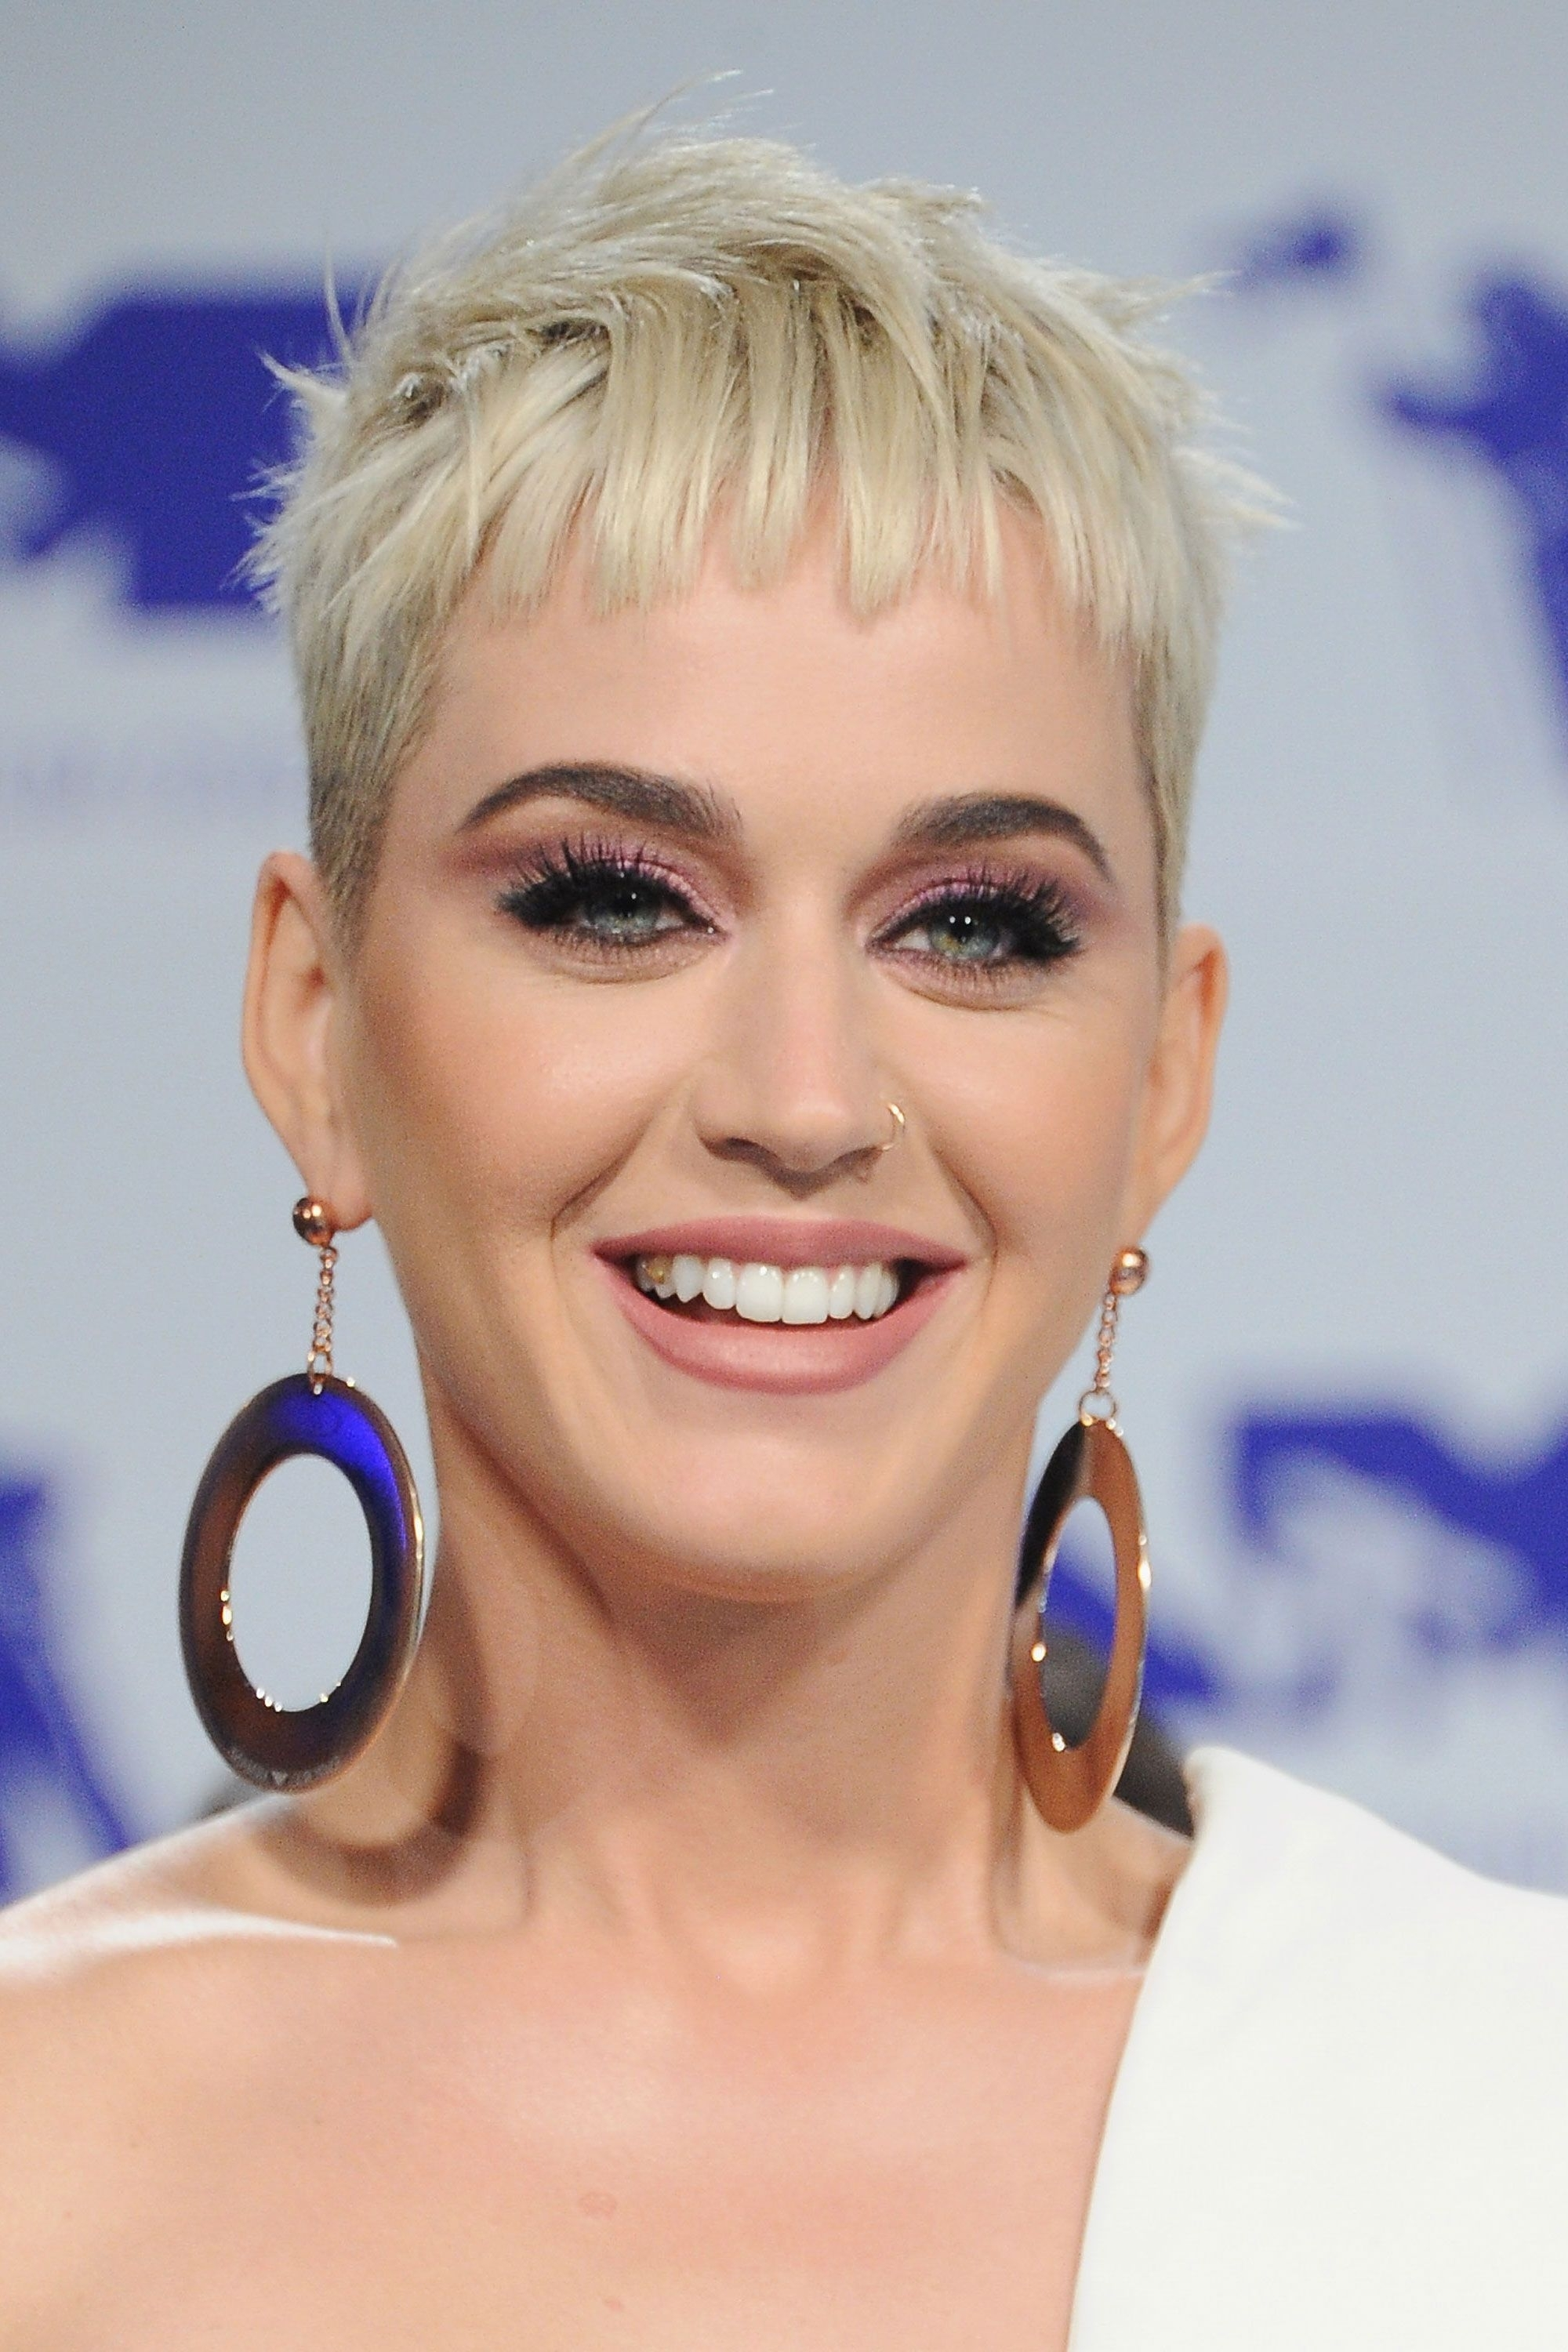 30 Short Hairstyles For Thick Hair 2017 – Women's Haircuts For Short Within Most Popular Choppy Bowl Cut Pixie Hairstyles (View 16 of 20)